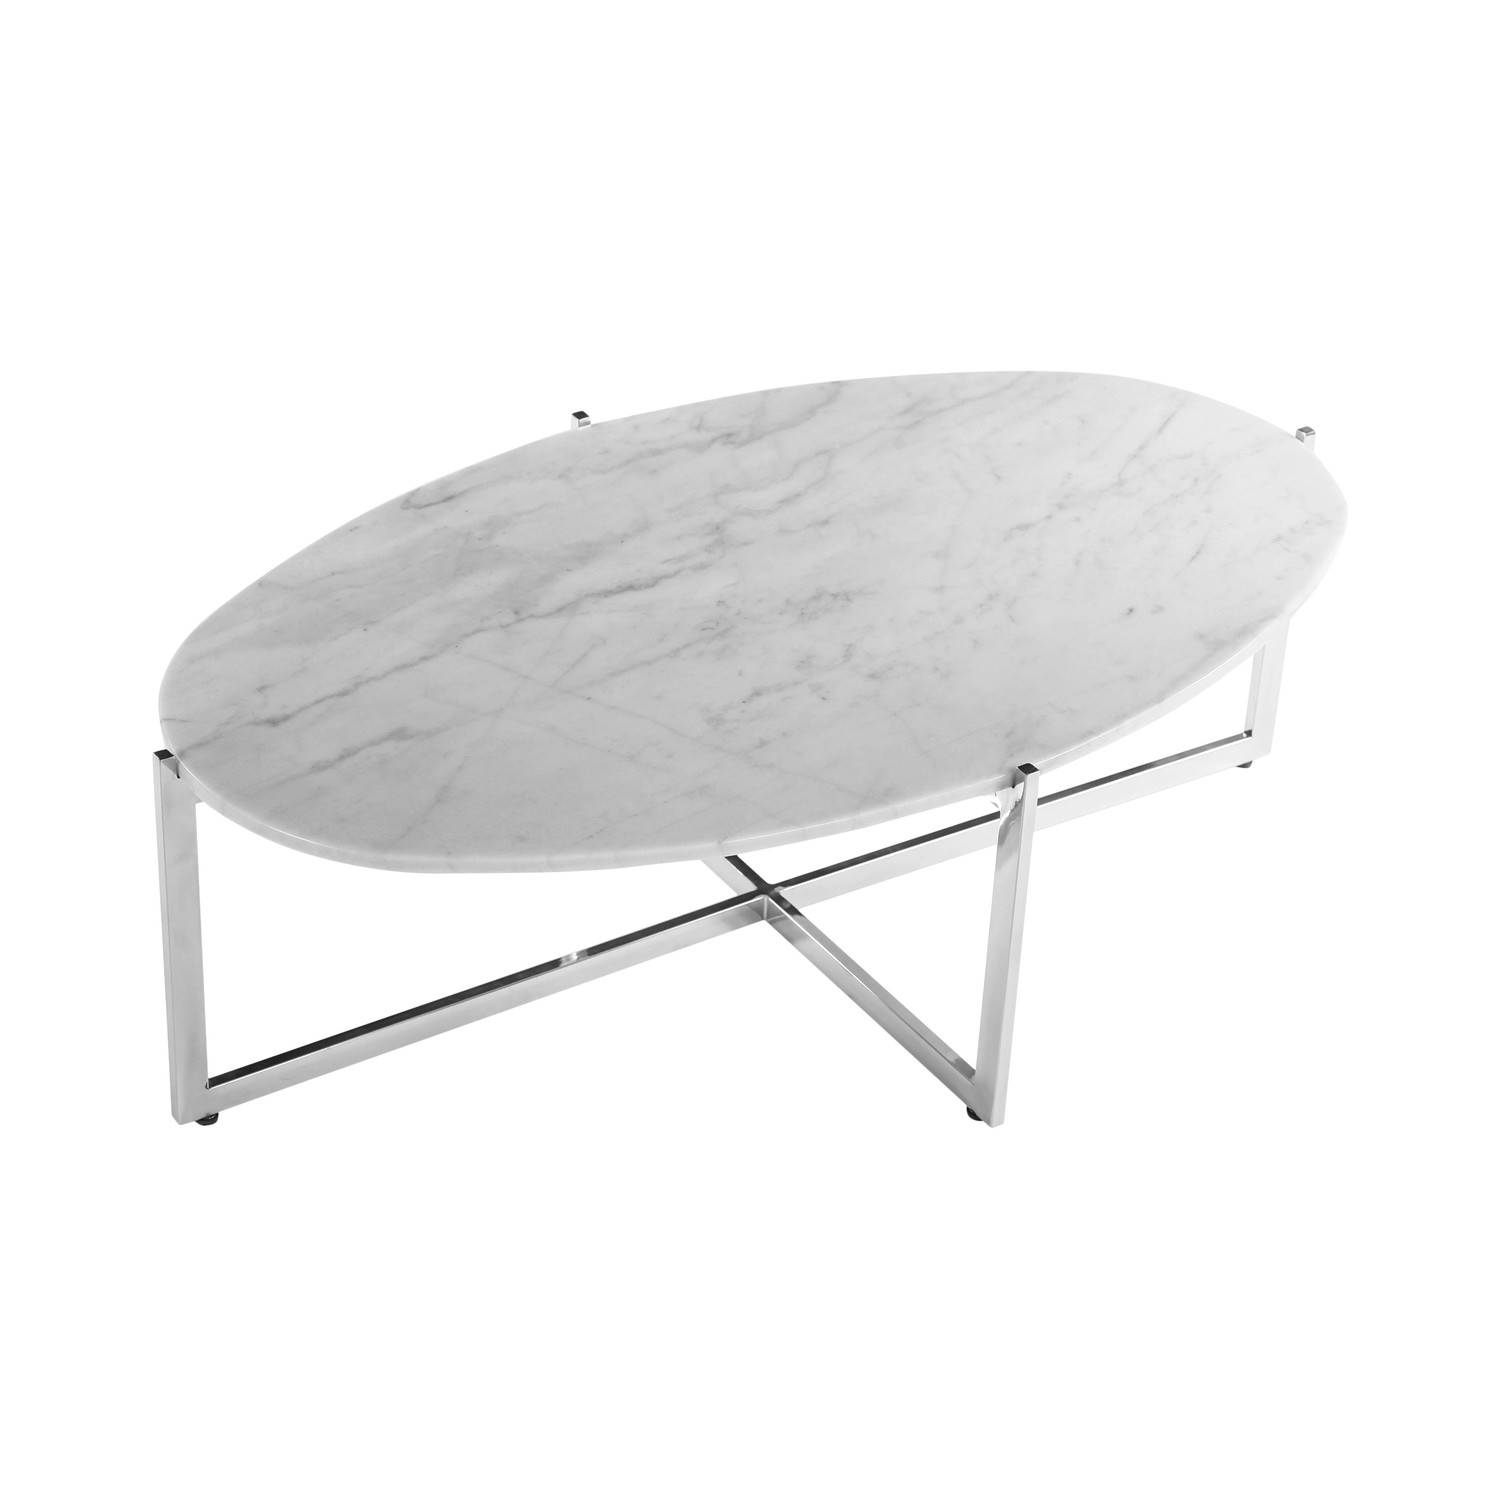 Oval Marble Coffee Table Modern Furniture - Jericho Mafjar Project throughout White Oval Coffee Tables (Image 24 of 30)